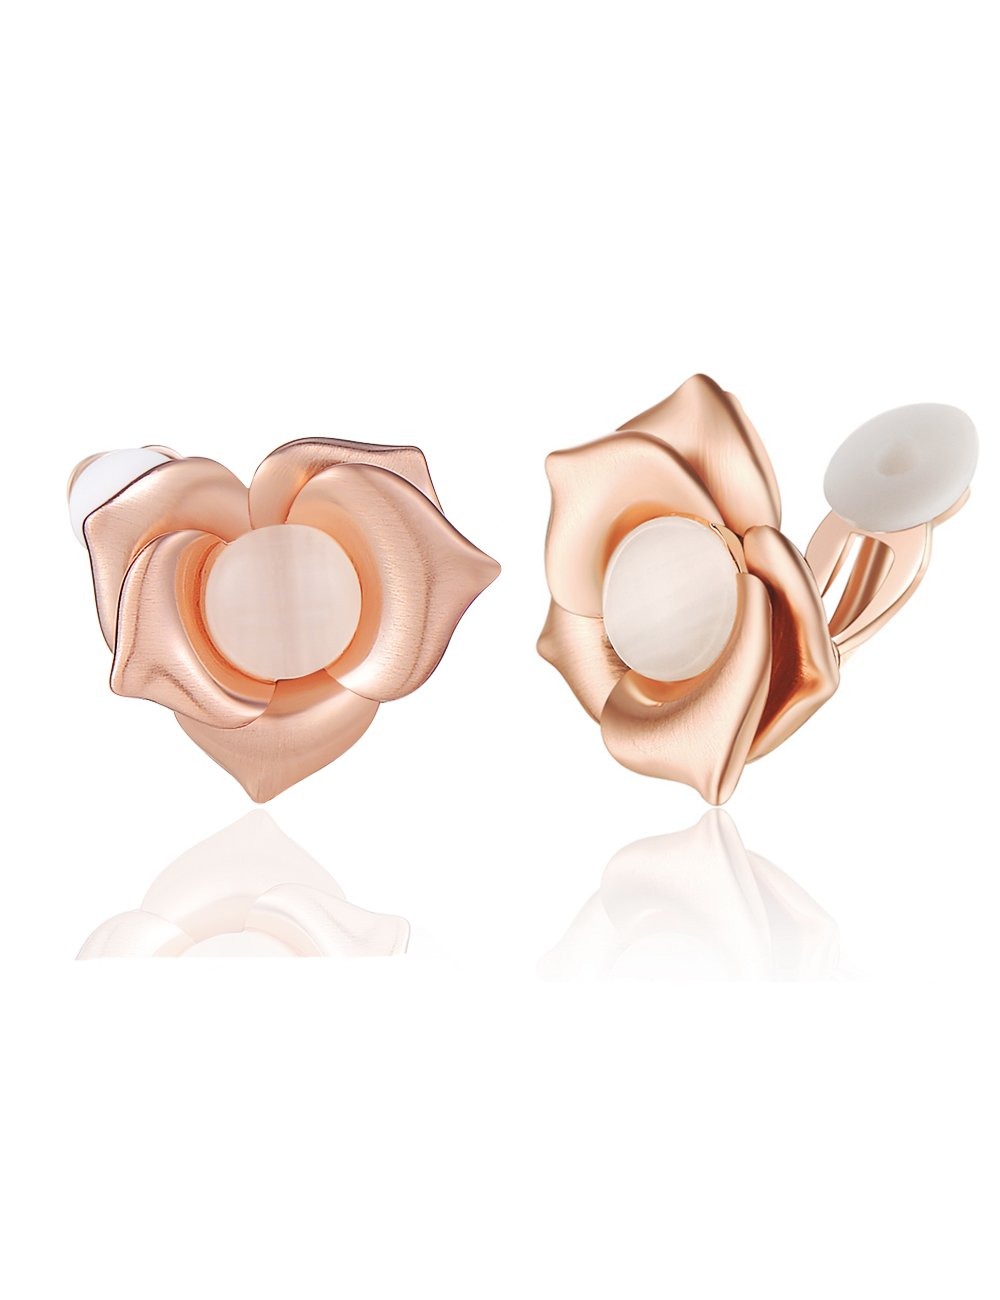 XZP Flower Clip On Earrings Rose Gold Girls Earring Pink Opal Jewelry Gift for Women